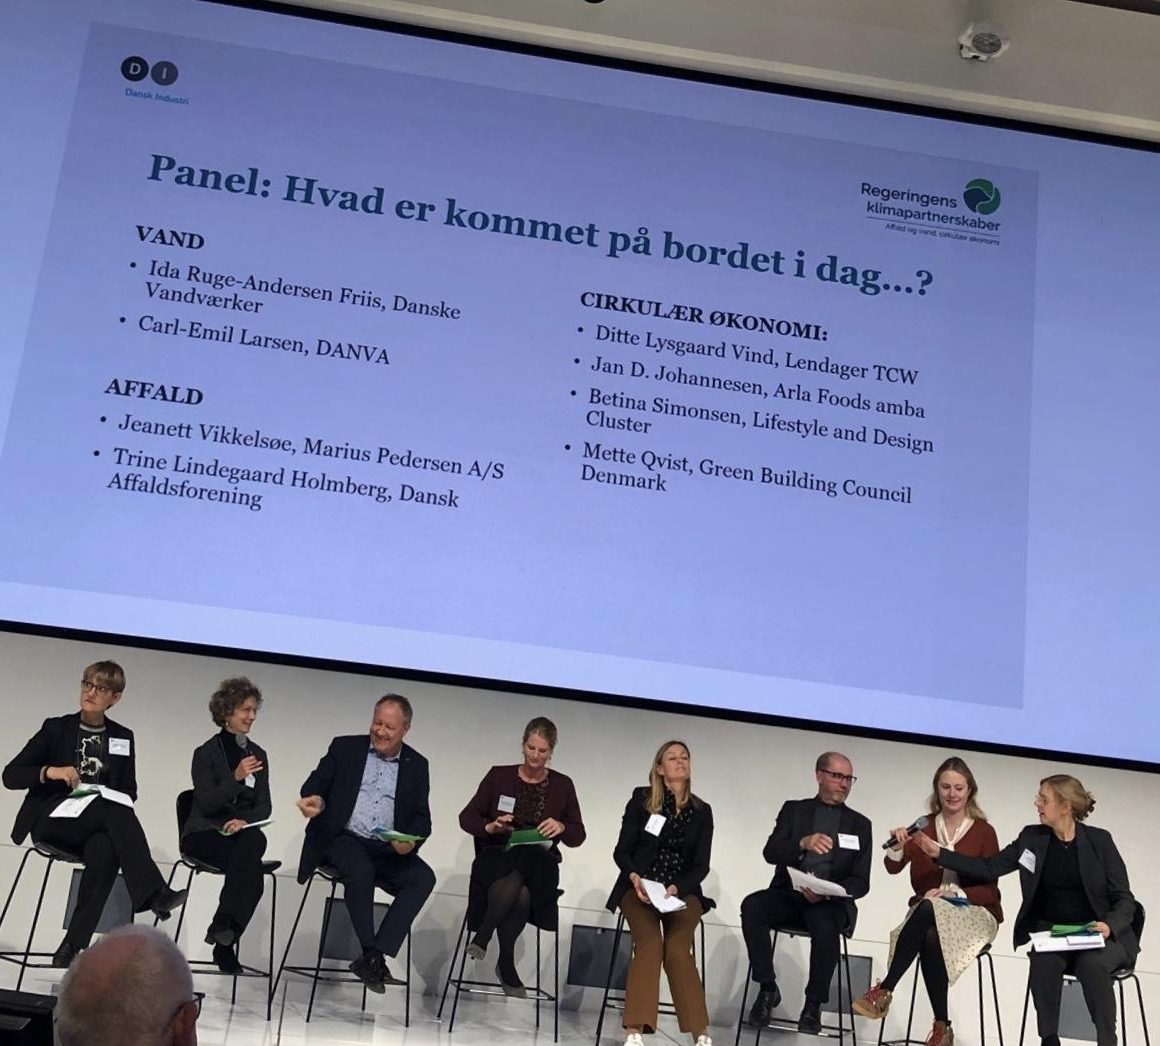 Danish Industry leading 1 of 13 Climate Partnerships - Leaderlab helps facilitate